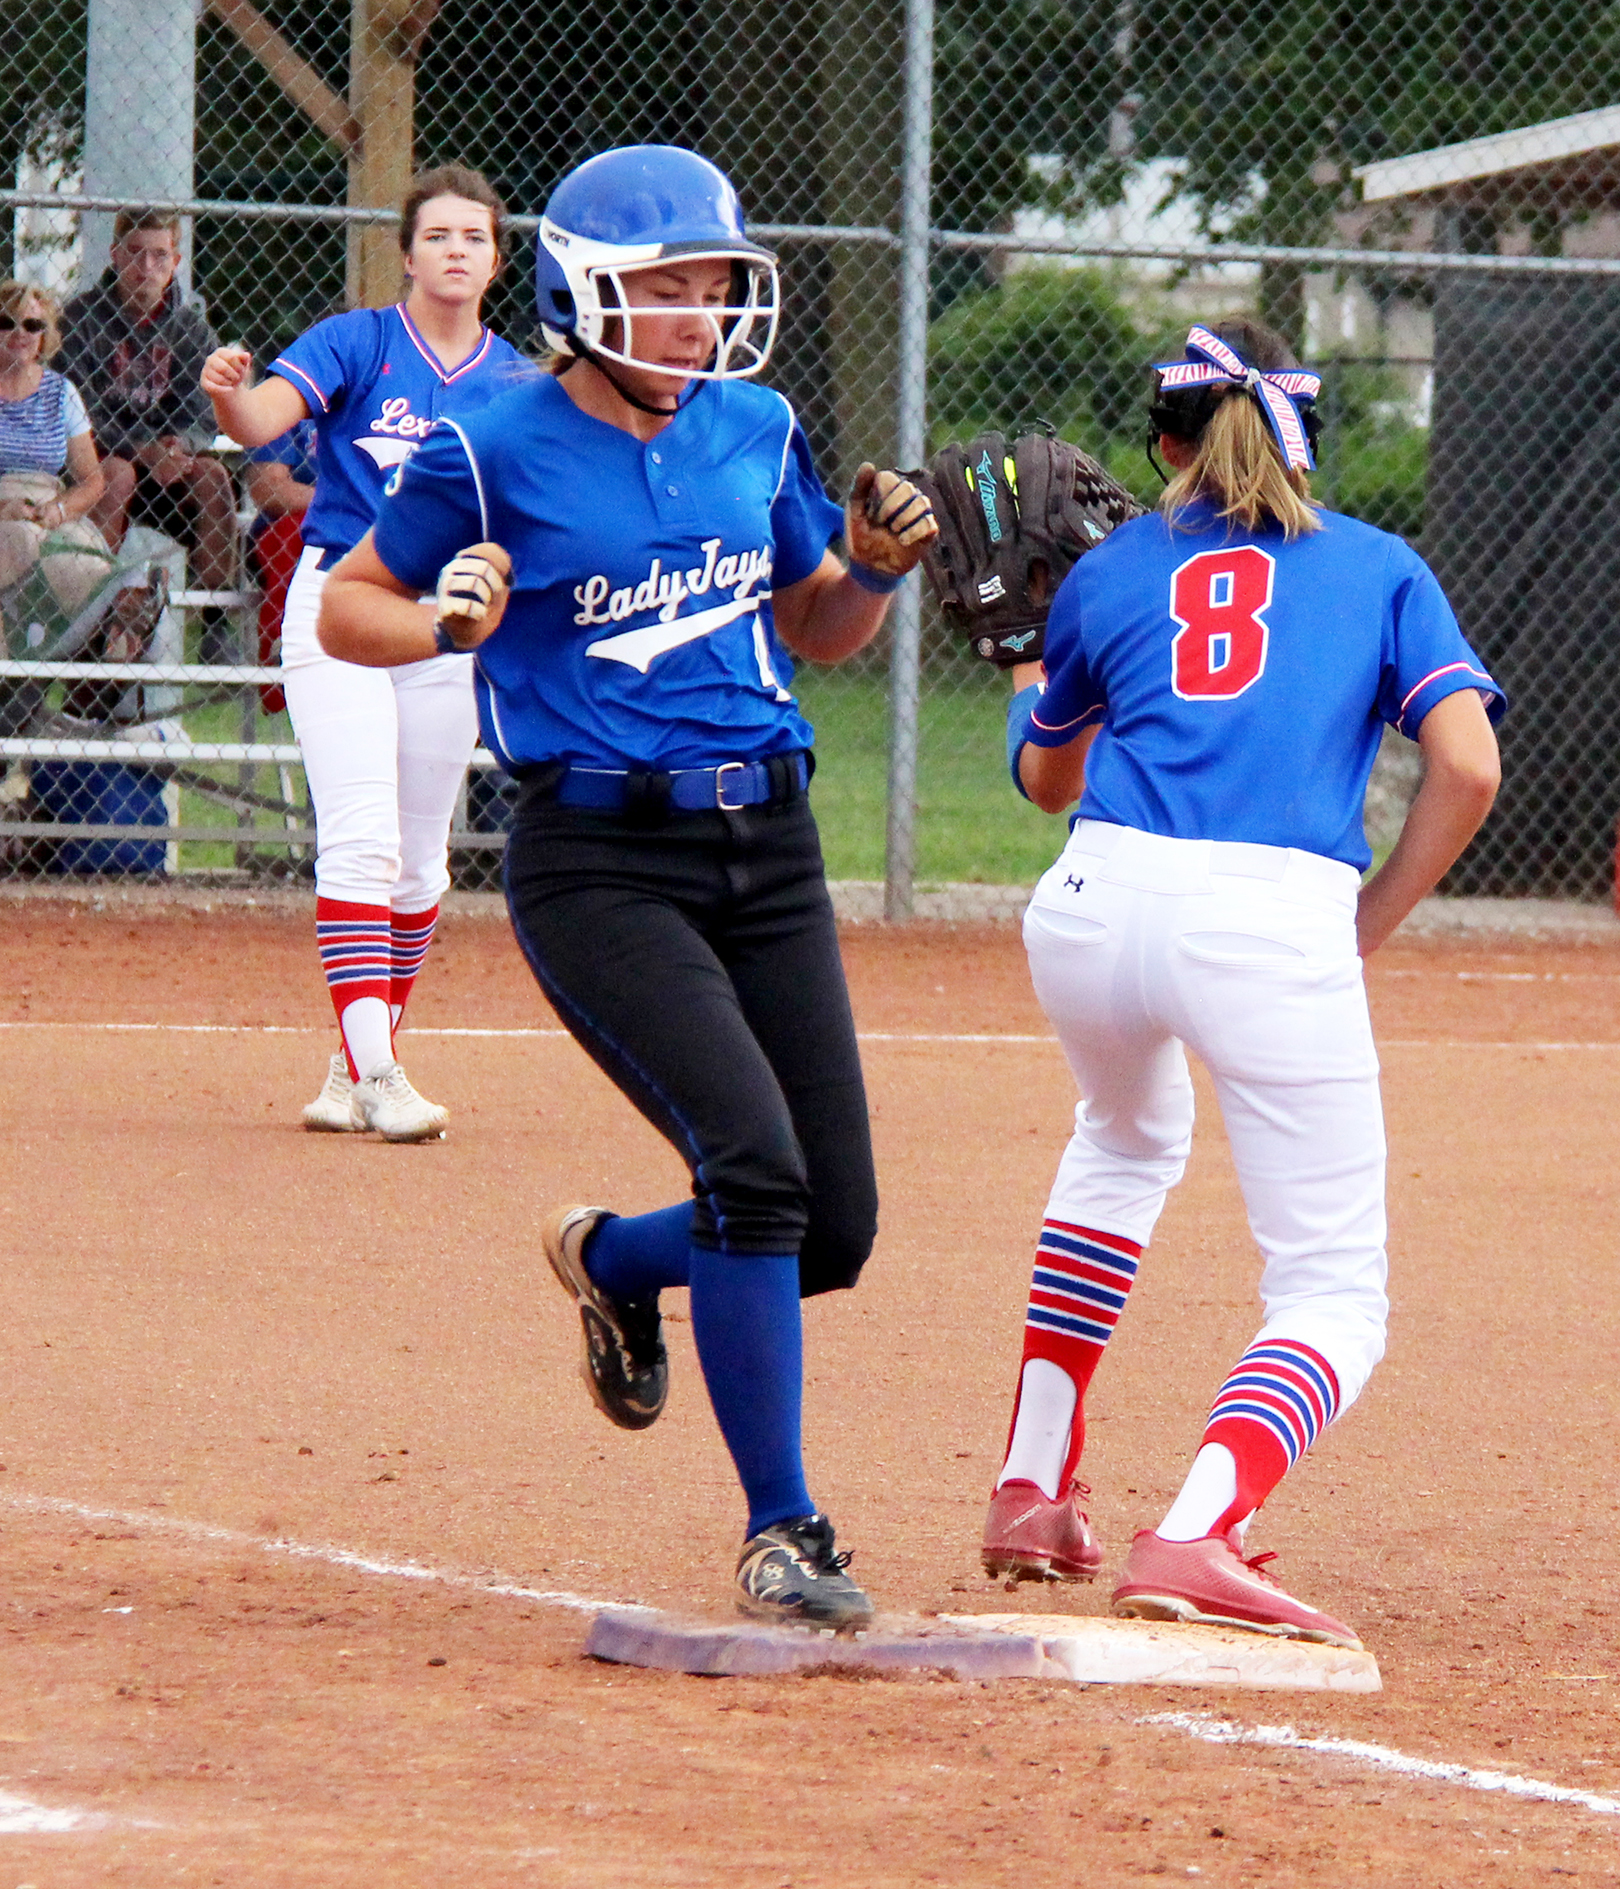 ROSS MARTIN/Citizen photo West Platte first baseman Rachel Heili, left, beats out an infield single during a North Platte Invitational game against Lexington on Saturday, Aug. 20 at Dean Park in Dearborn, Mo.